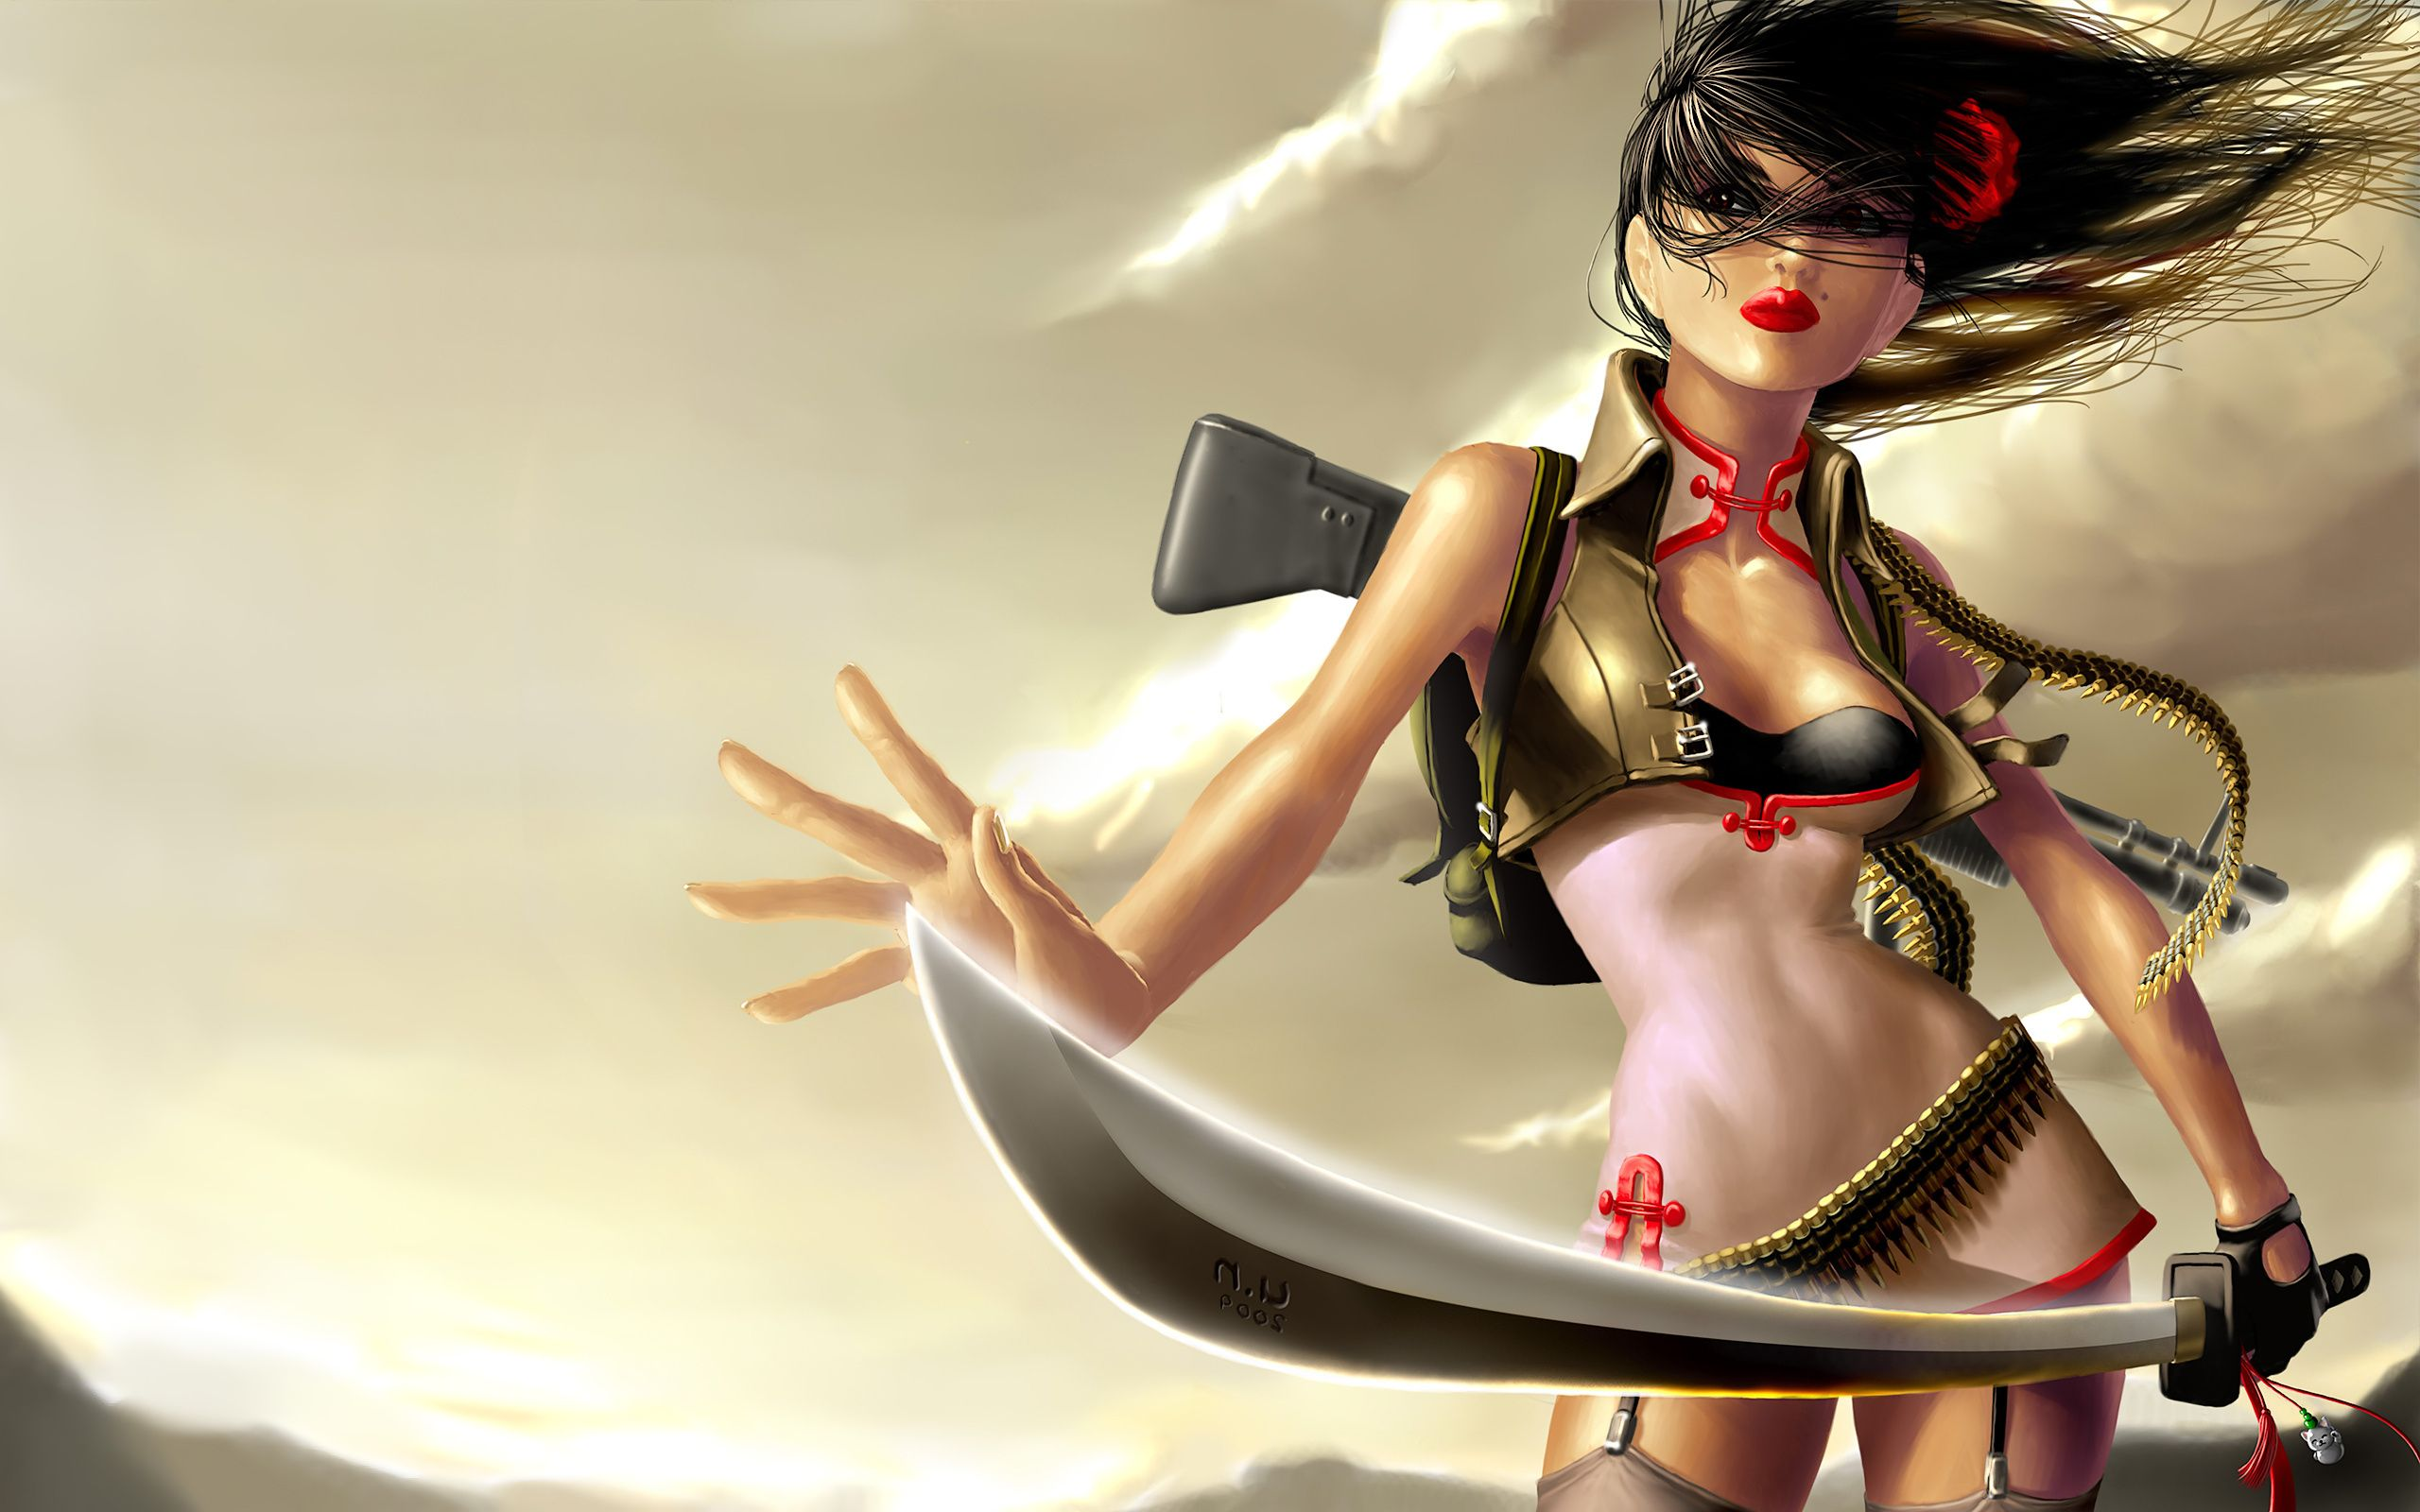 Magical Fantasy Hd Wallpapers That Will Take Your Breathe: Sword, Girl, Warrior, Sword